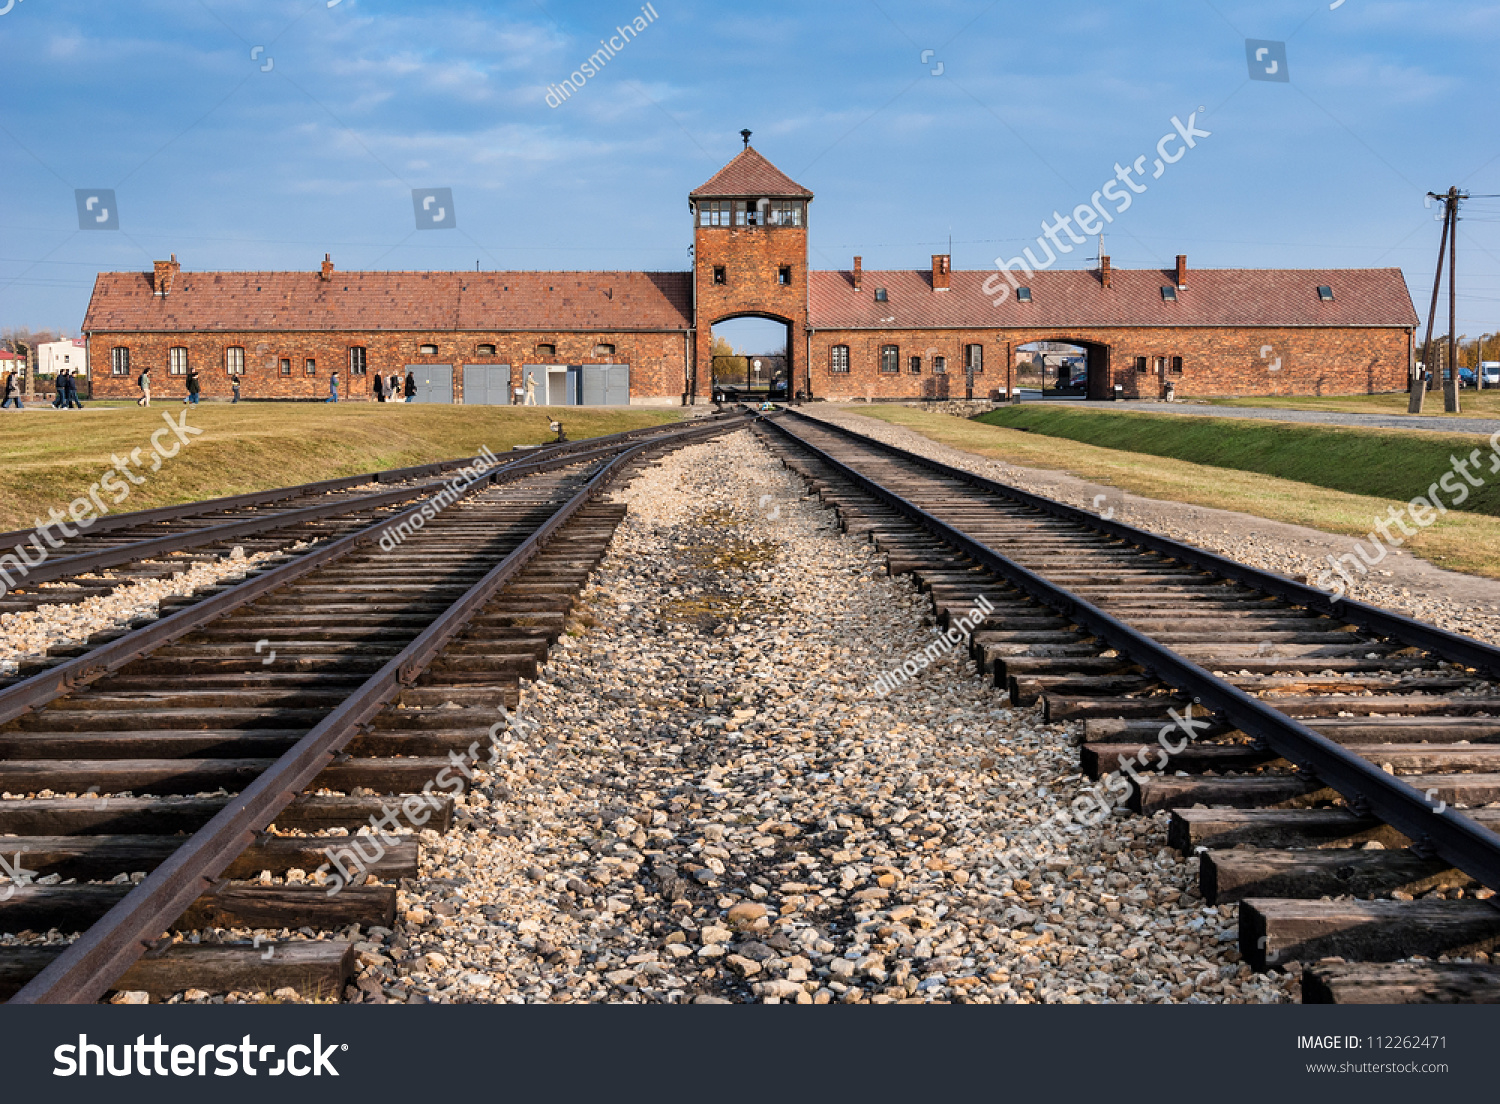 an overview of the notorious death camp auschwitz Kl auschwitz was the largest of the german nazi concentration camps and  extermination centers over 11 million men, women and children lost their lives  here.